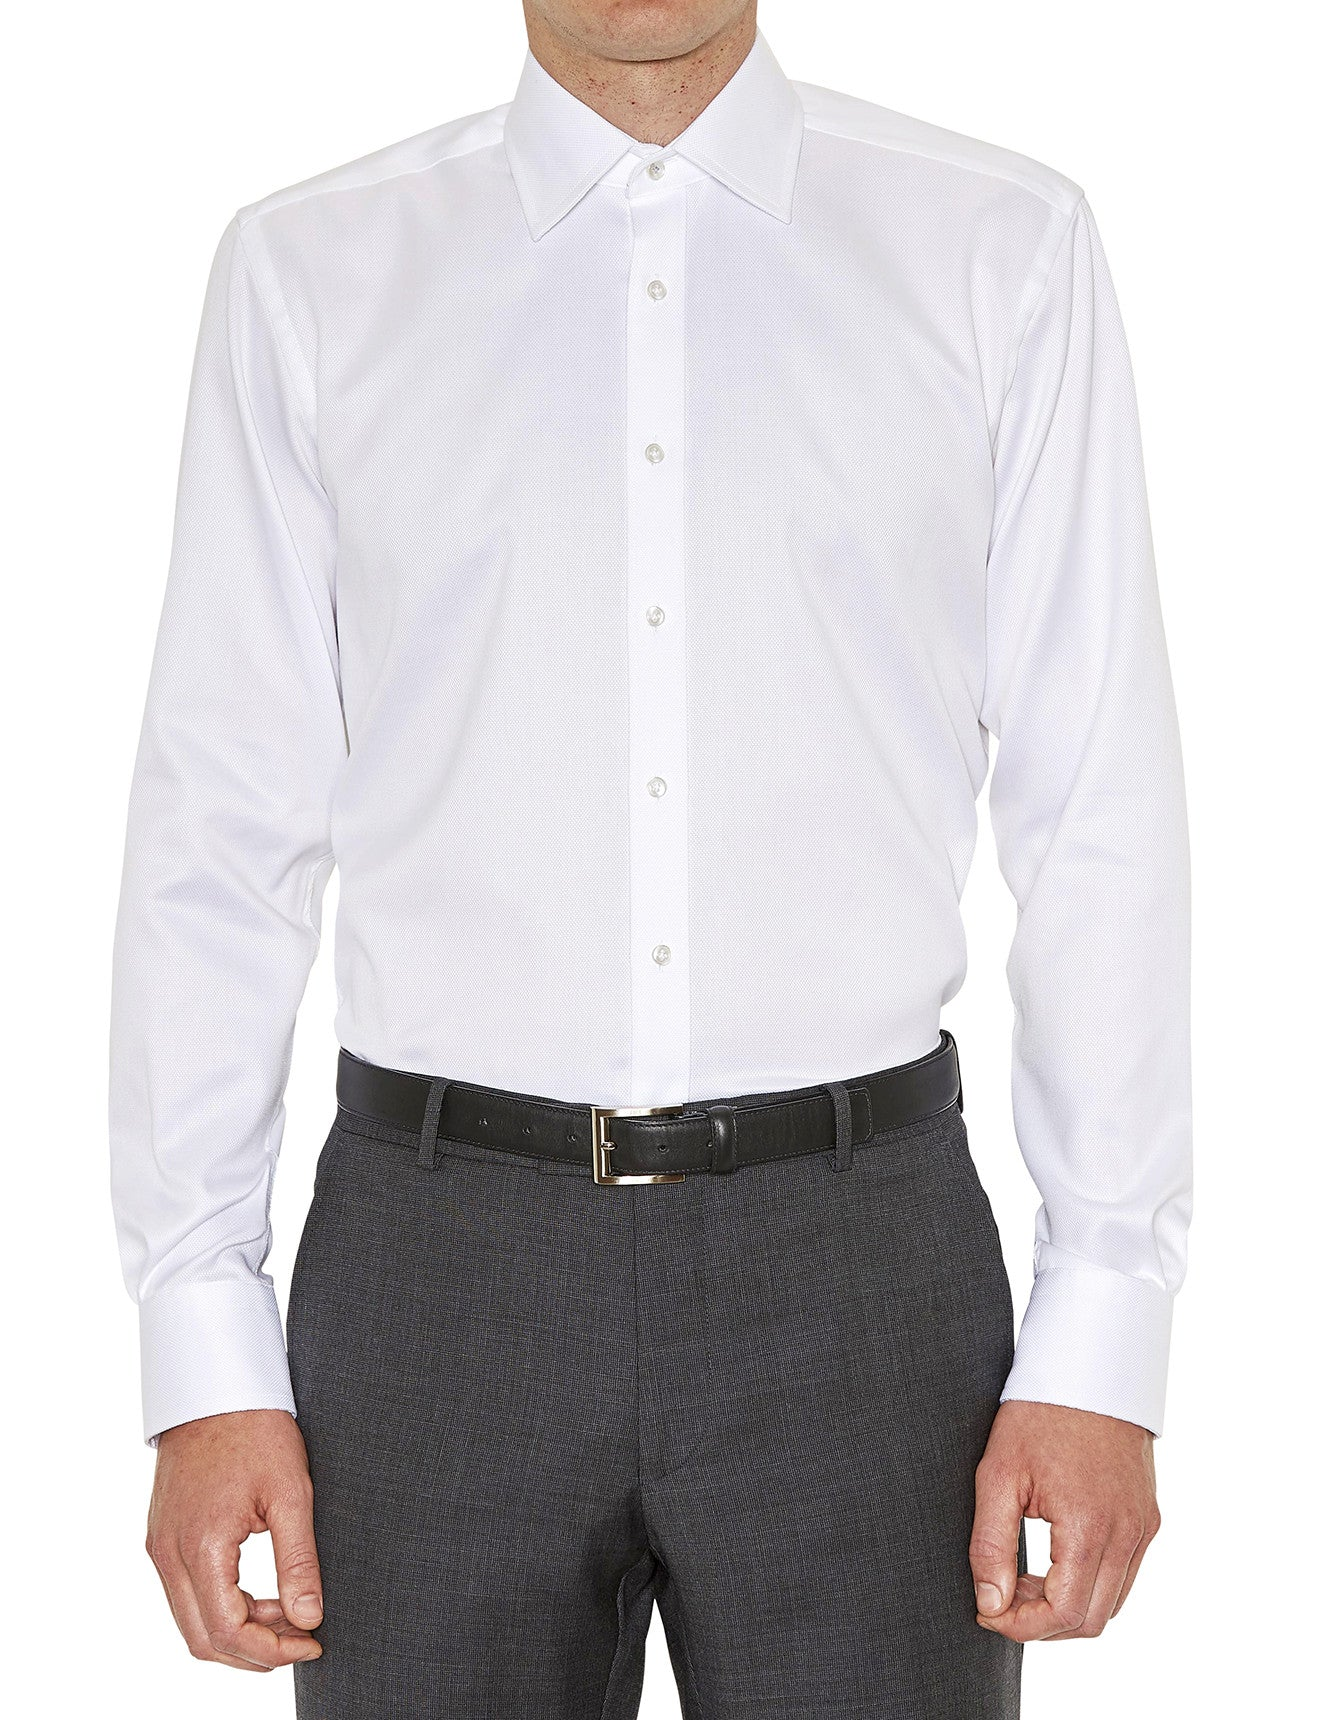 Pioneer Business Shirt in White